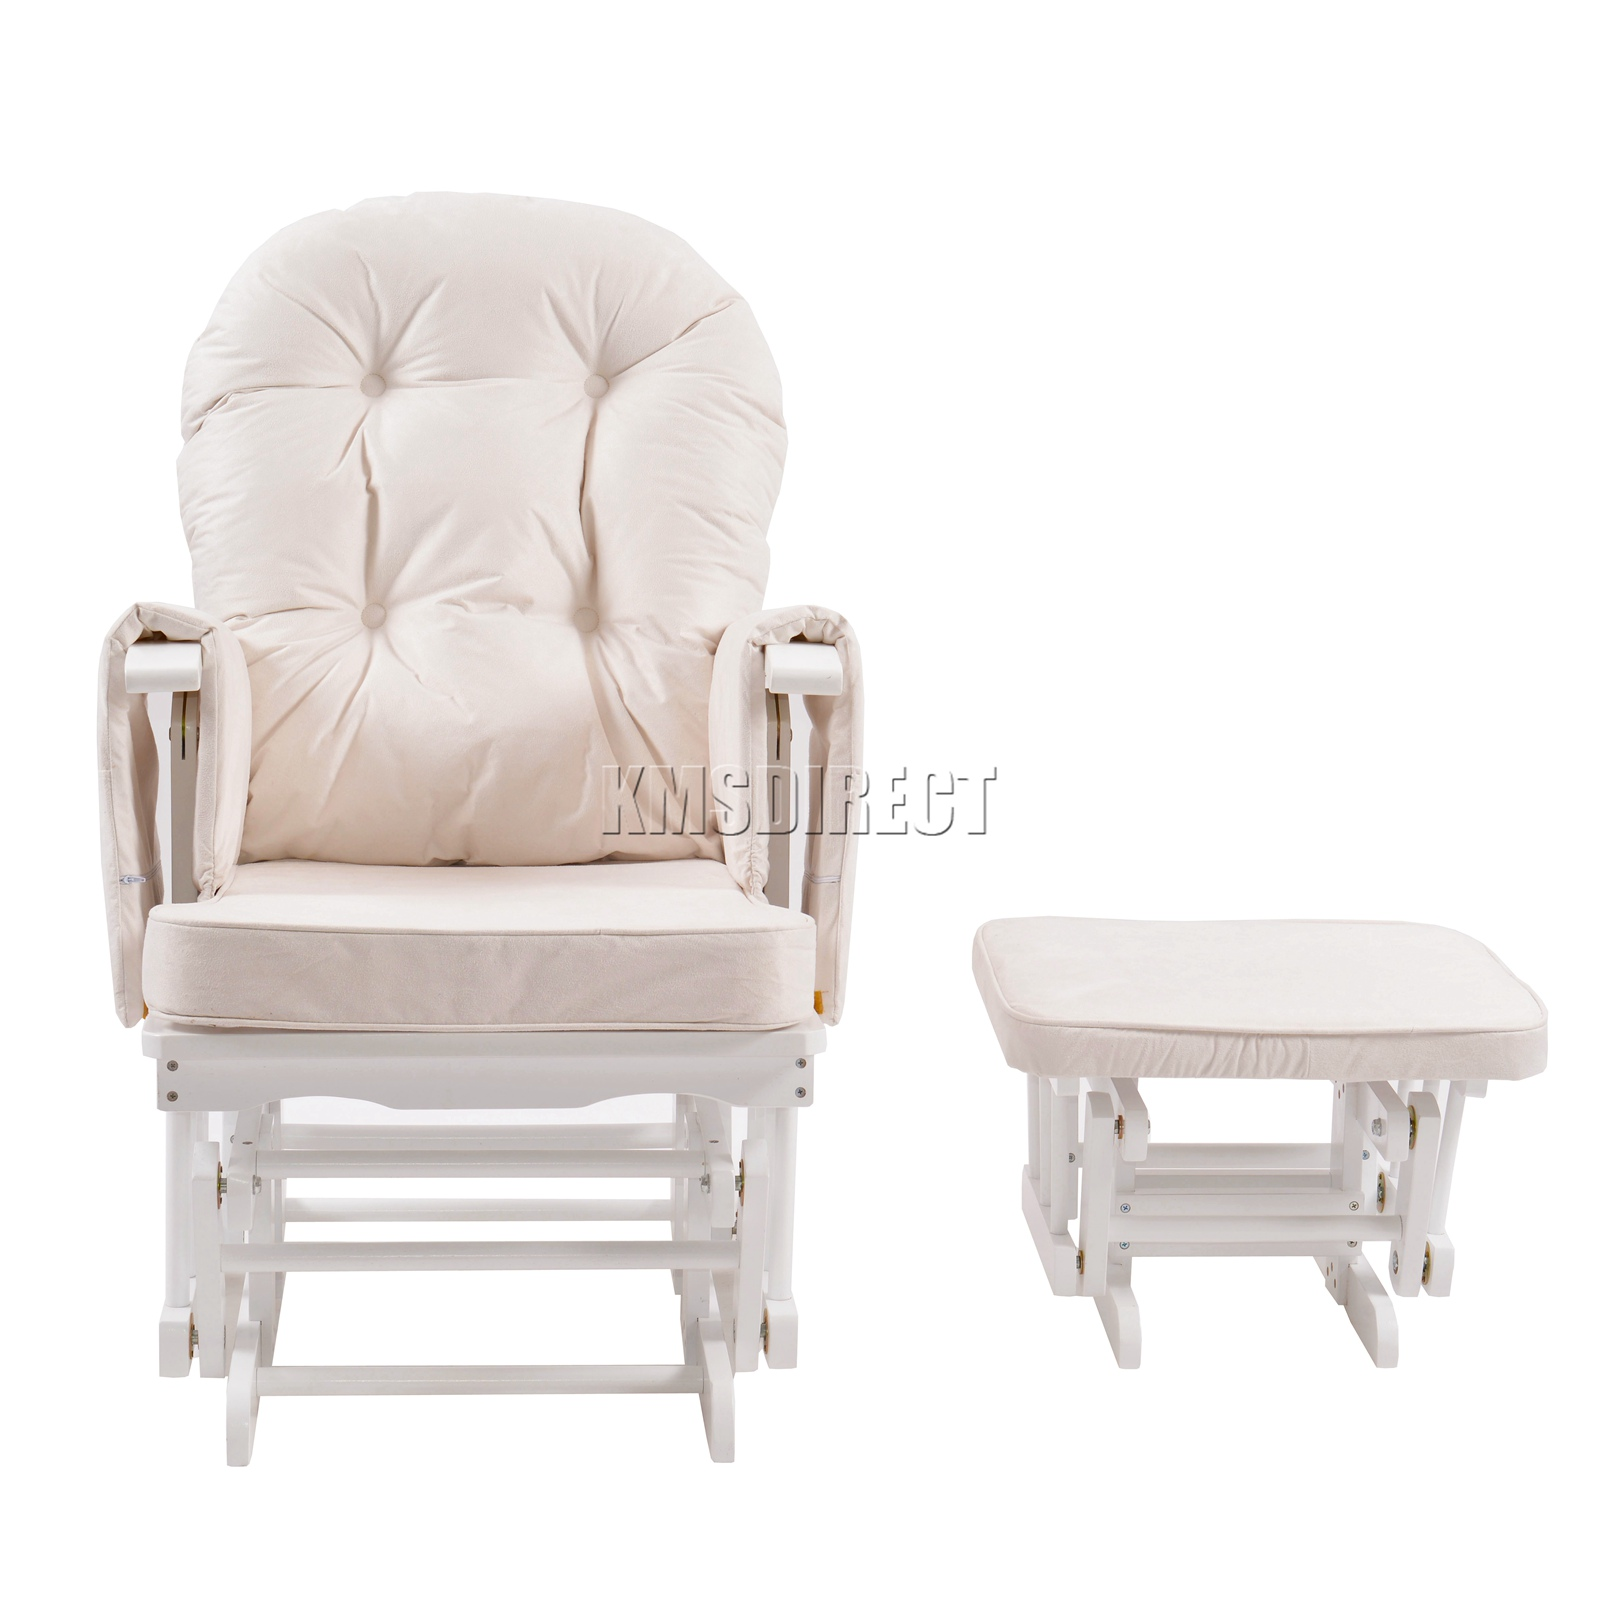 FoxHunter-Nursing-Glider-Maternity-Rocking-Chair-With-Stool-White-Wood-Frame-New miniatuur 25